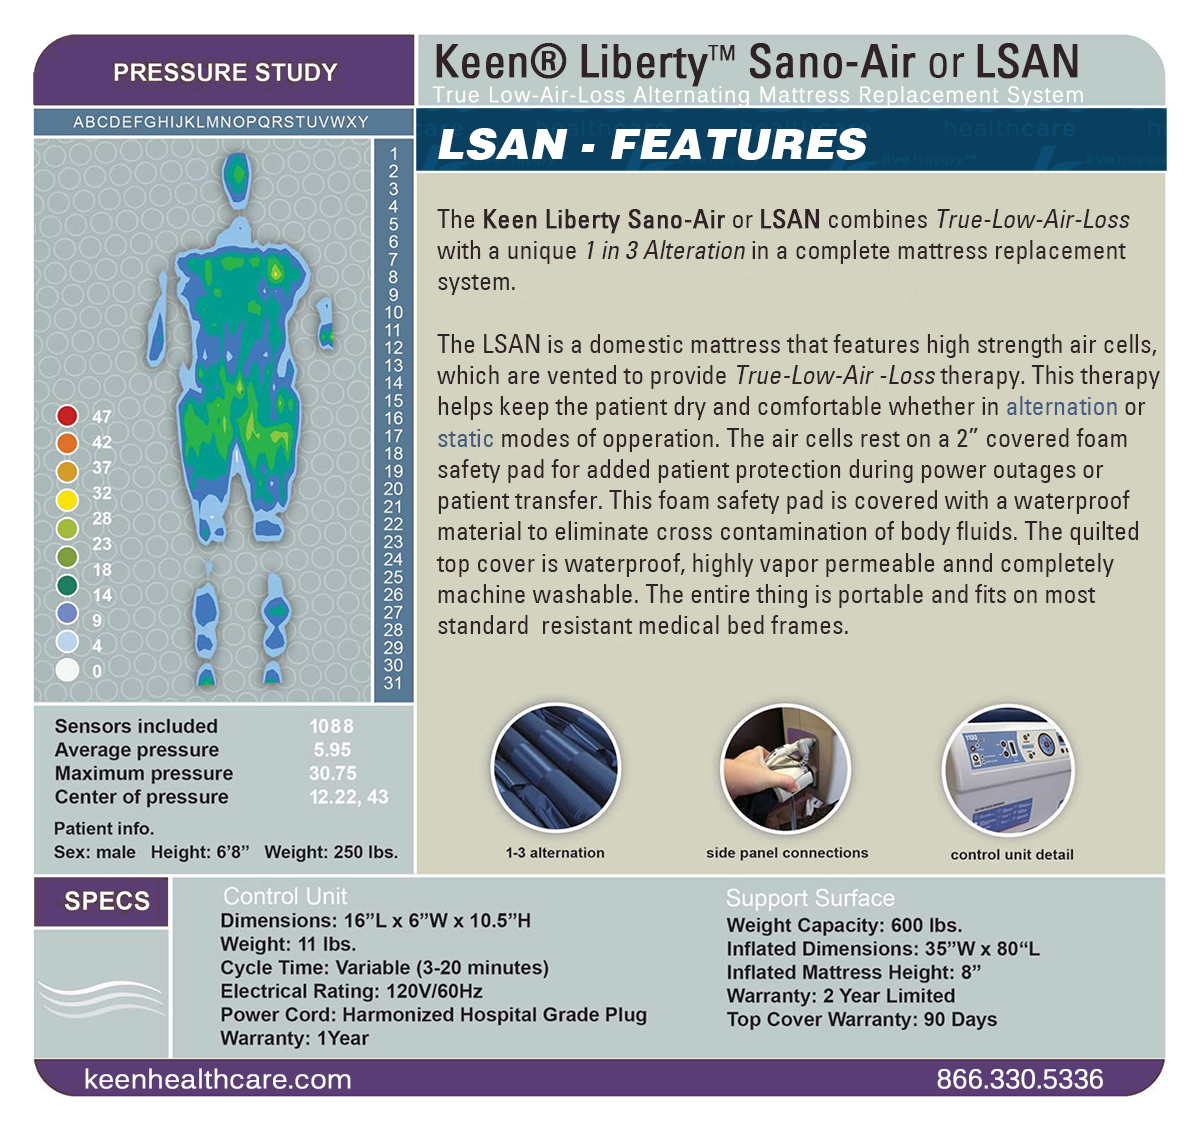 Keen® Liberty™ SanoAir Bariatric Alternating Air Mattress